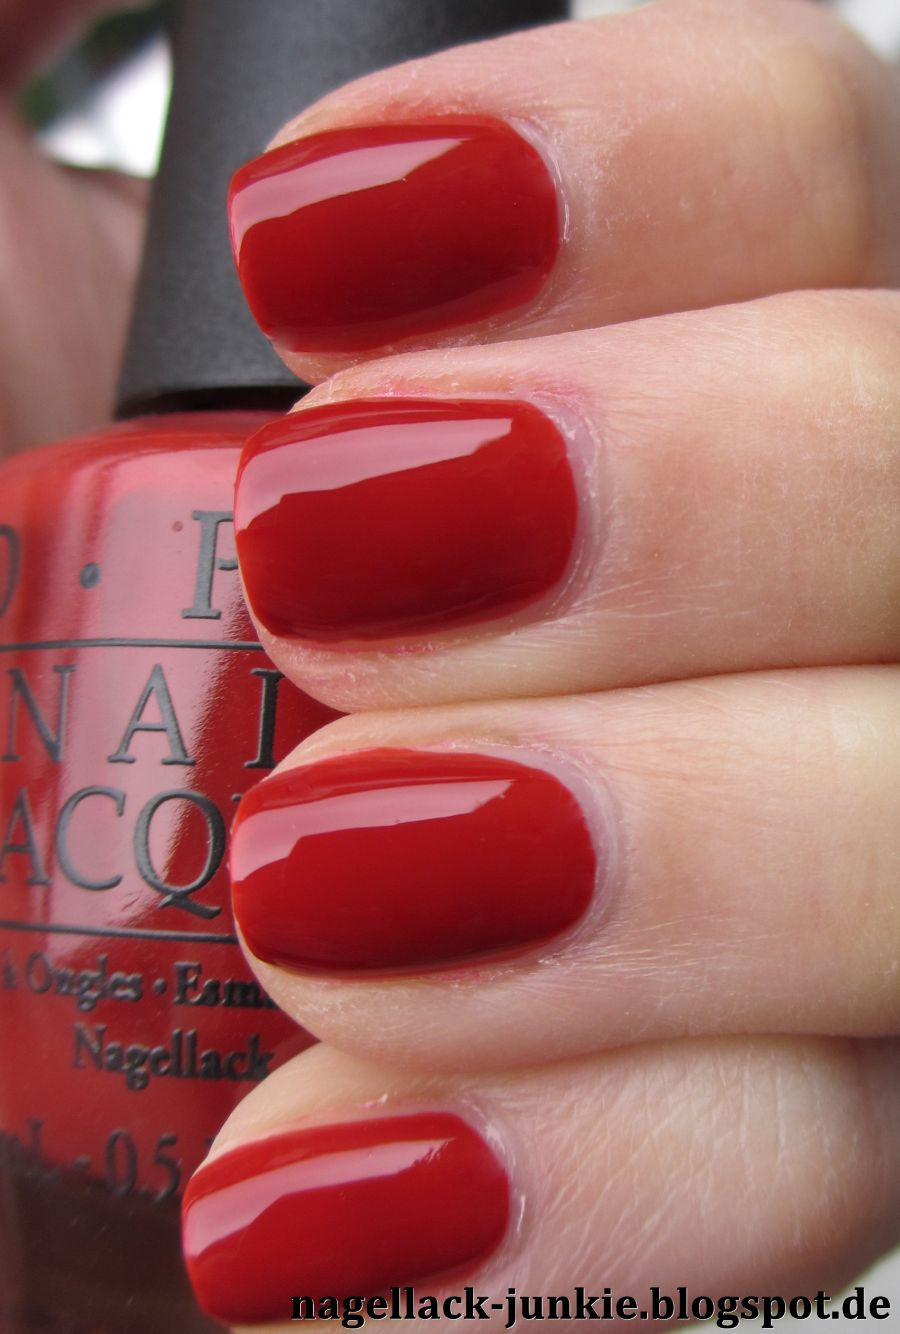 1x p2 Quick Dry Base Coat  2x OPI First Date At The Golden Gate  1x    Opi First Date At The Golden Gate